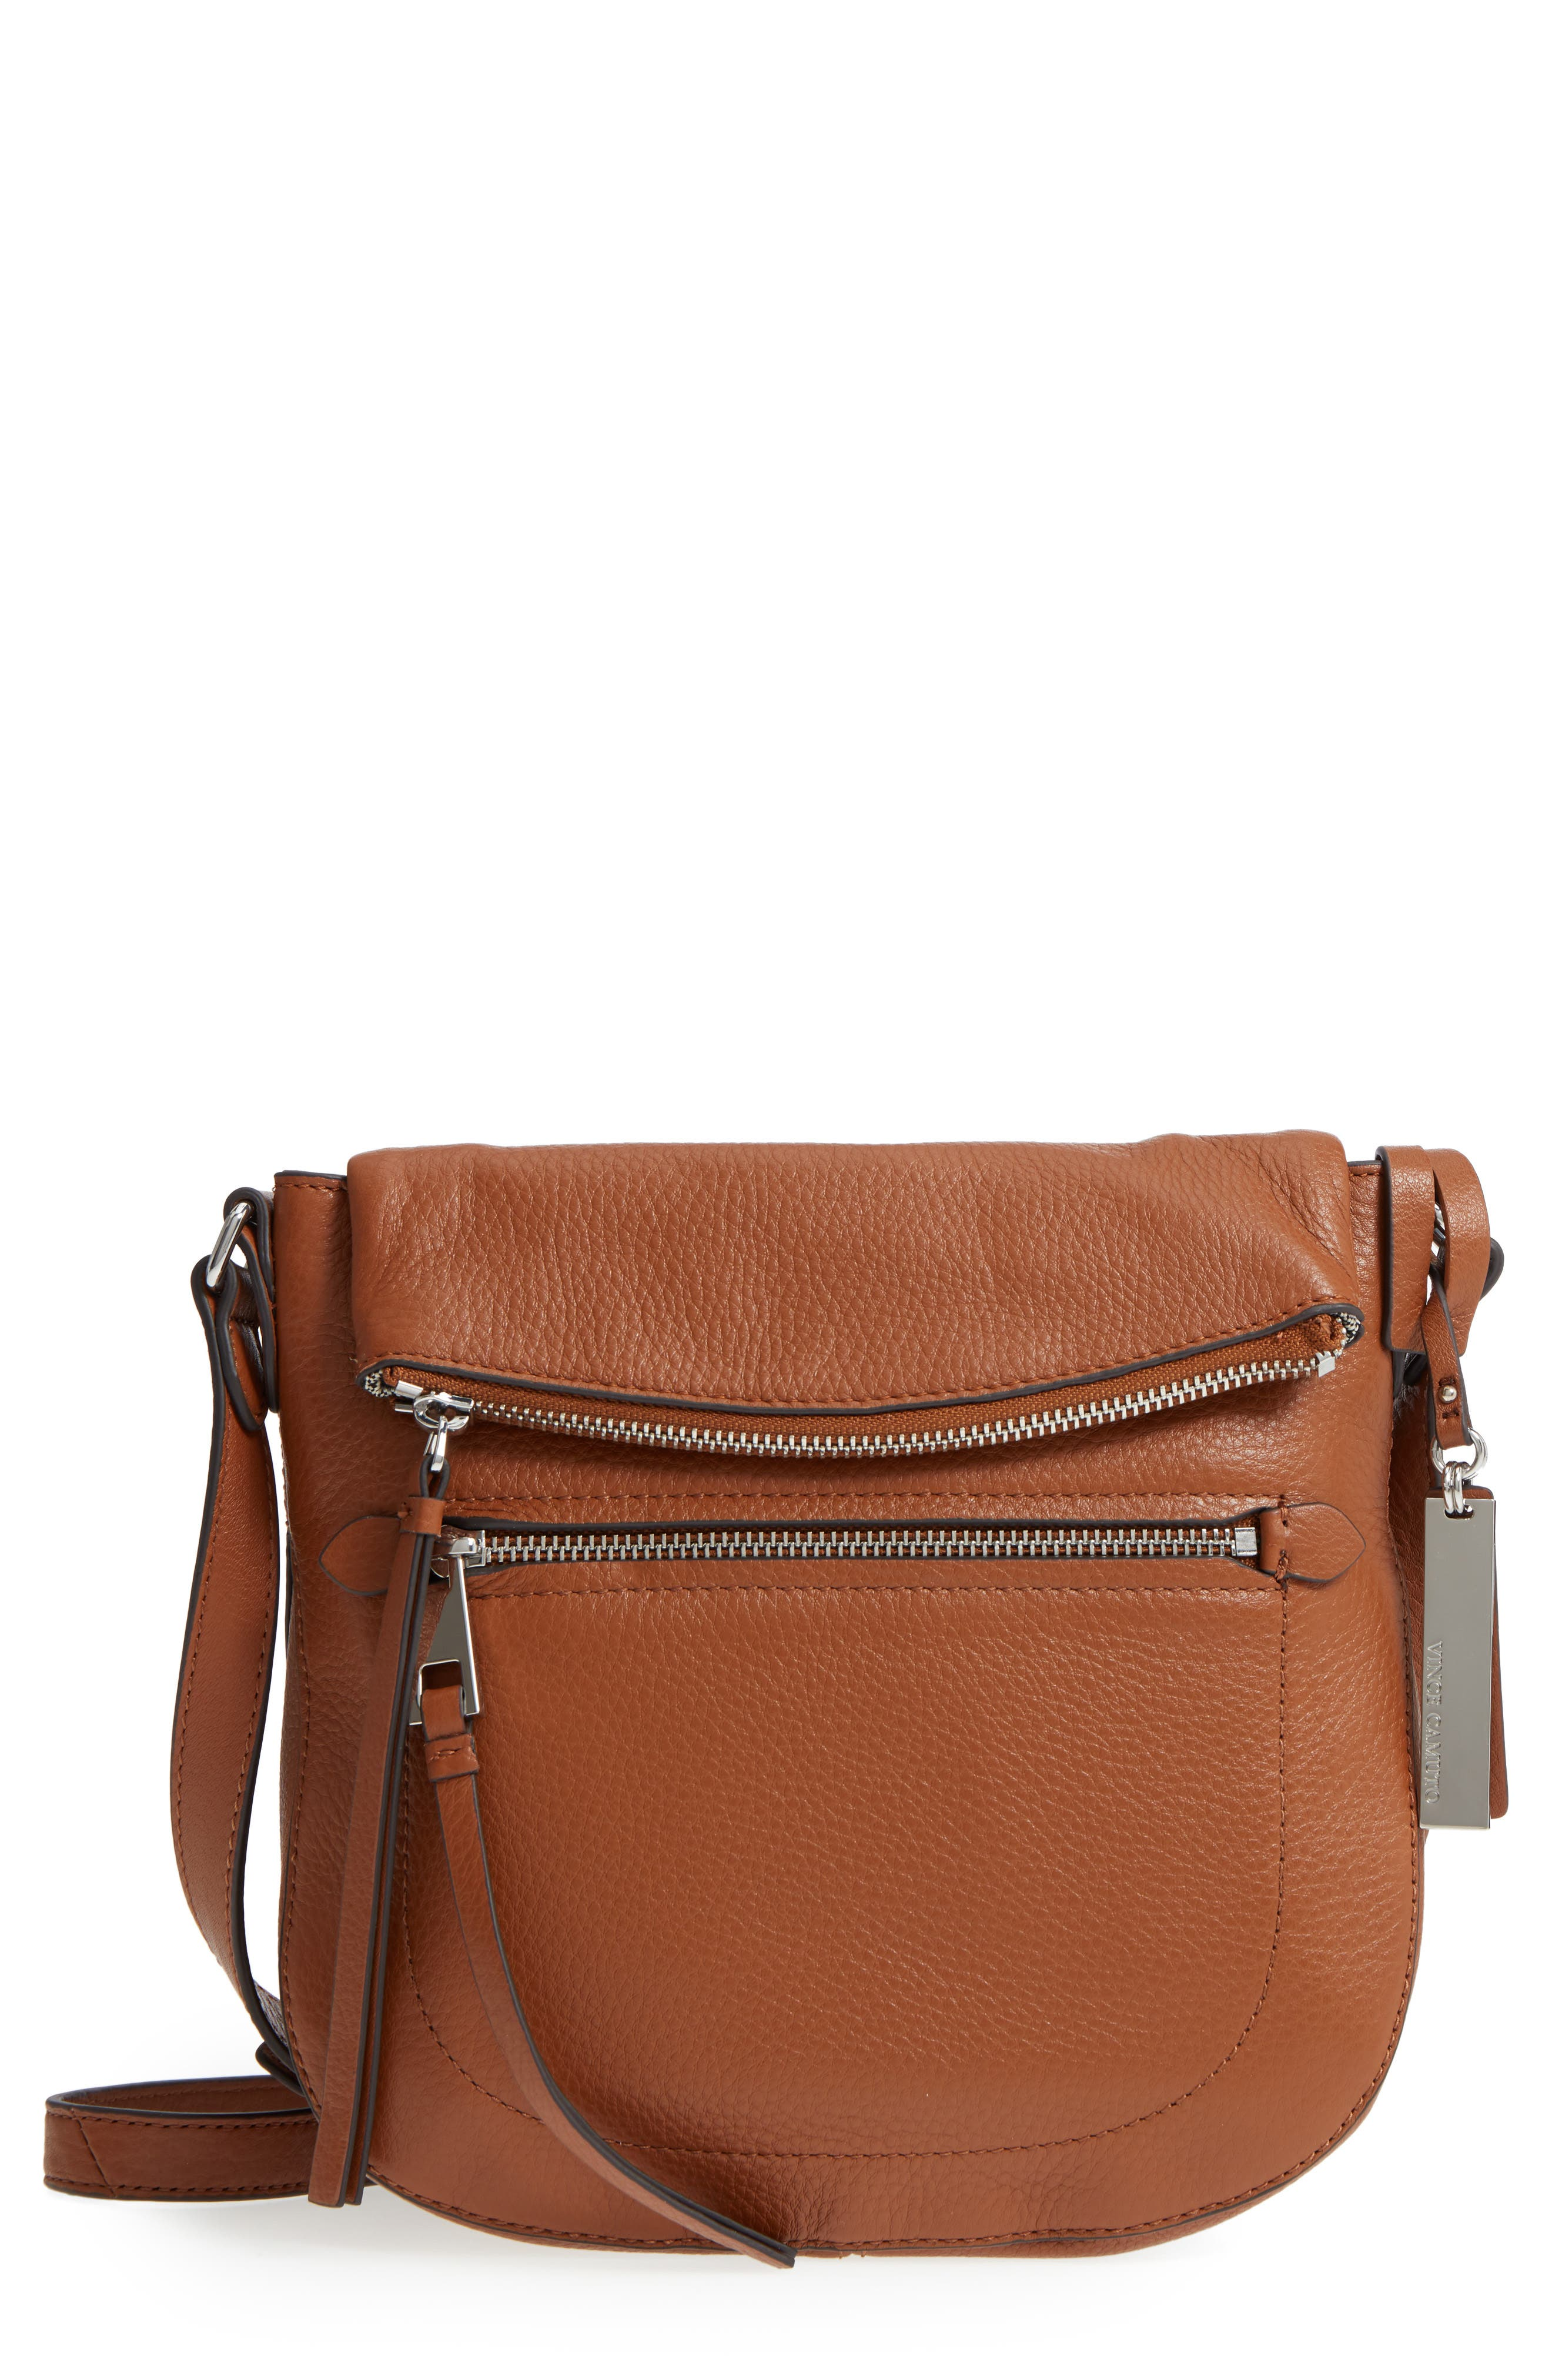 Vince Camuto 'Tala' Leather Crossbody Bag (Nordstrom Exclusive)